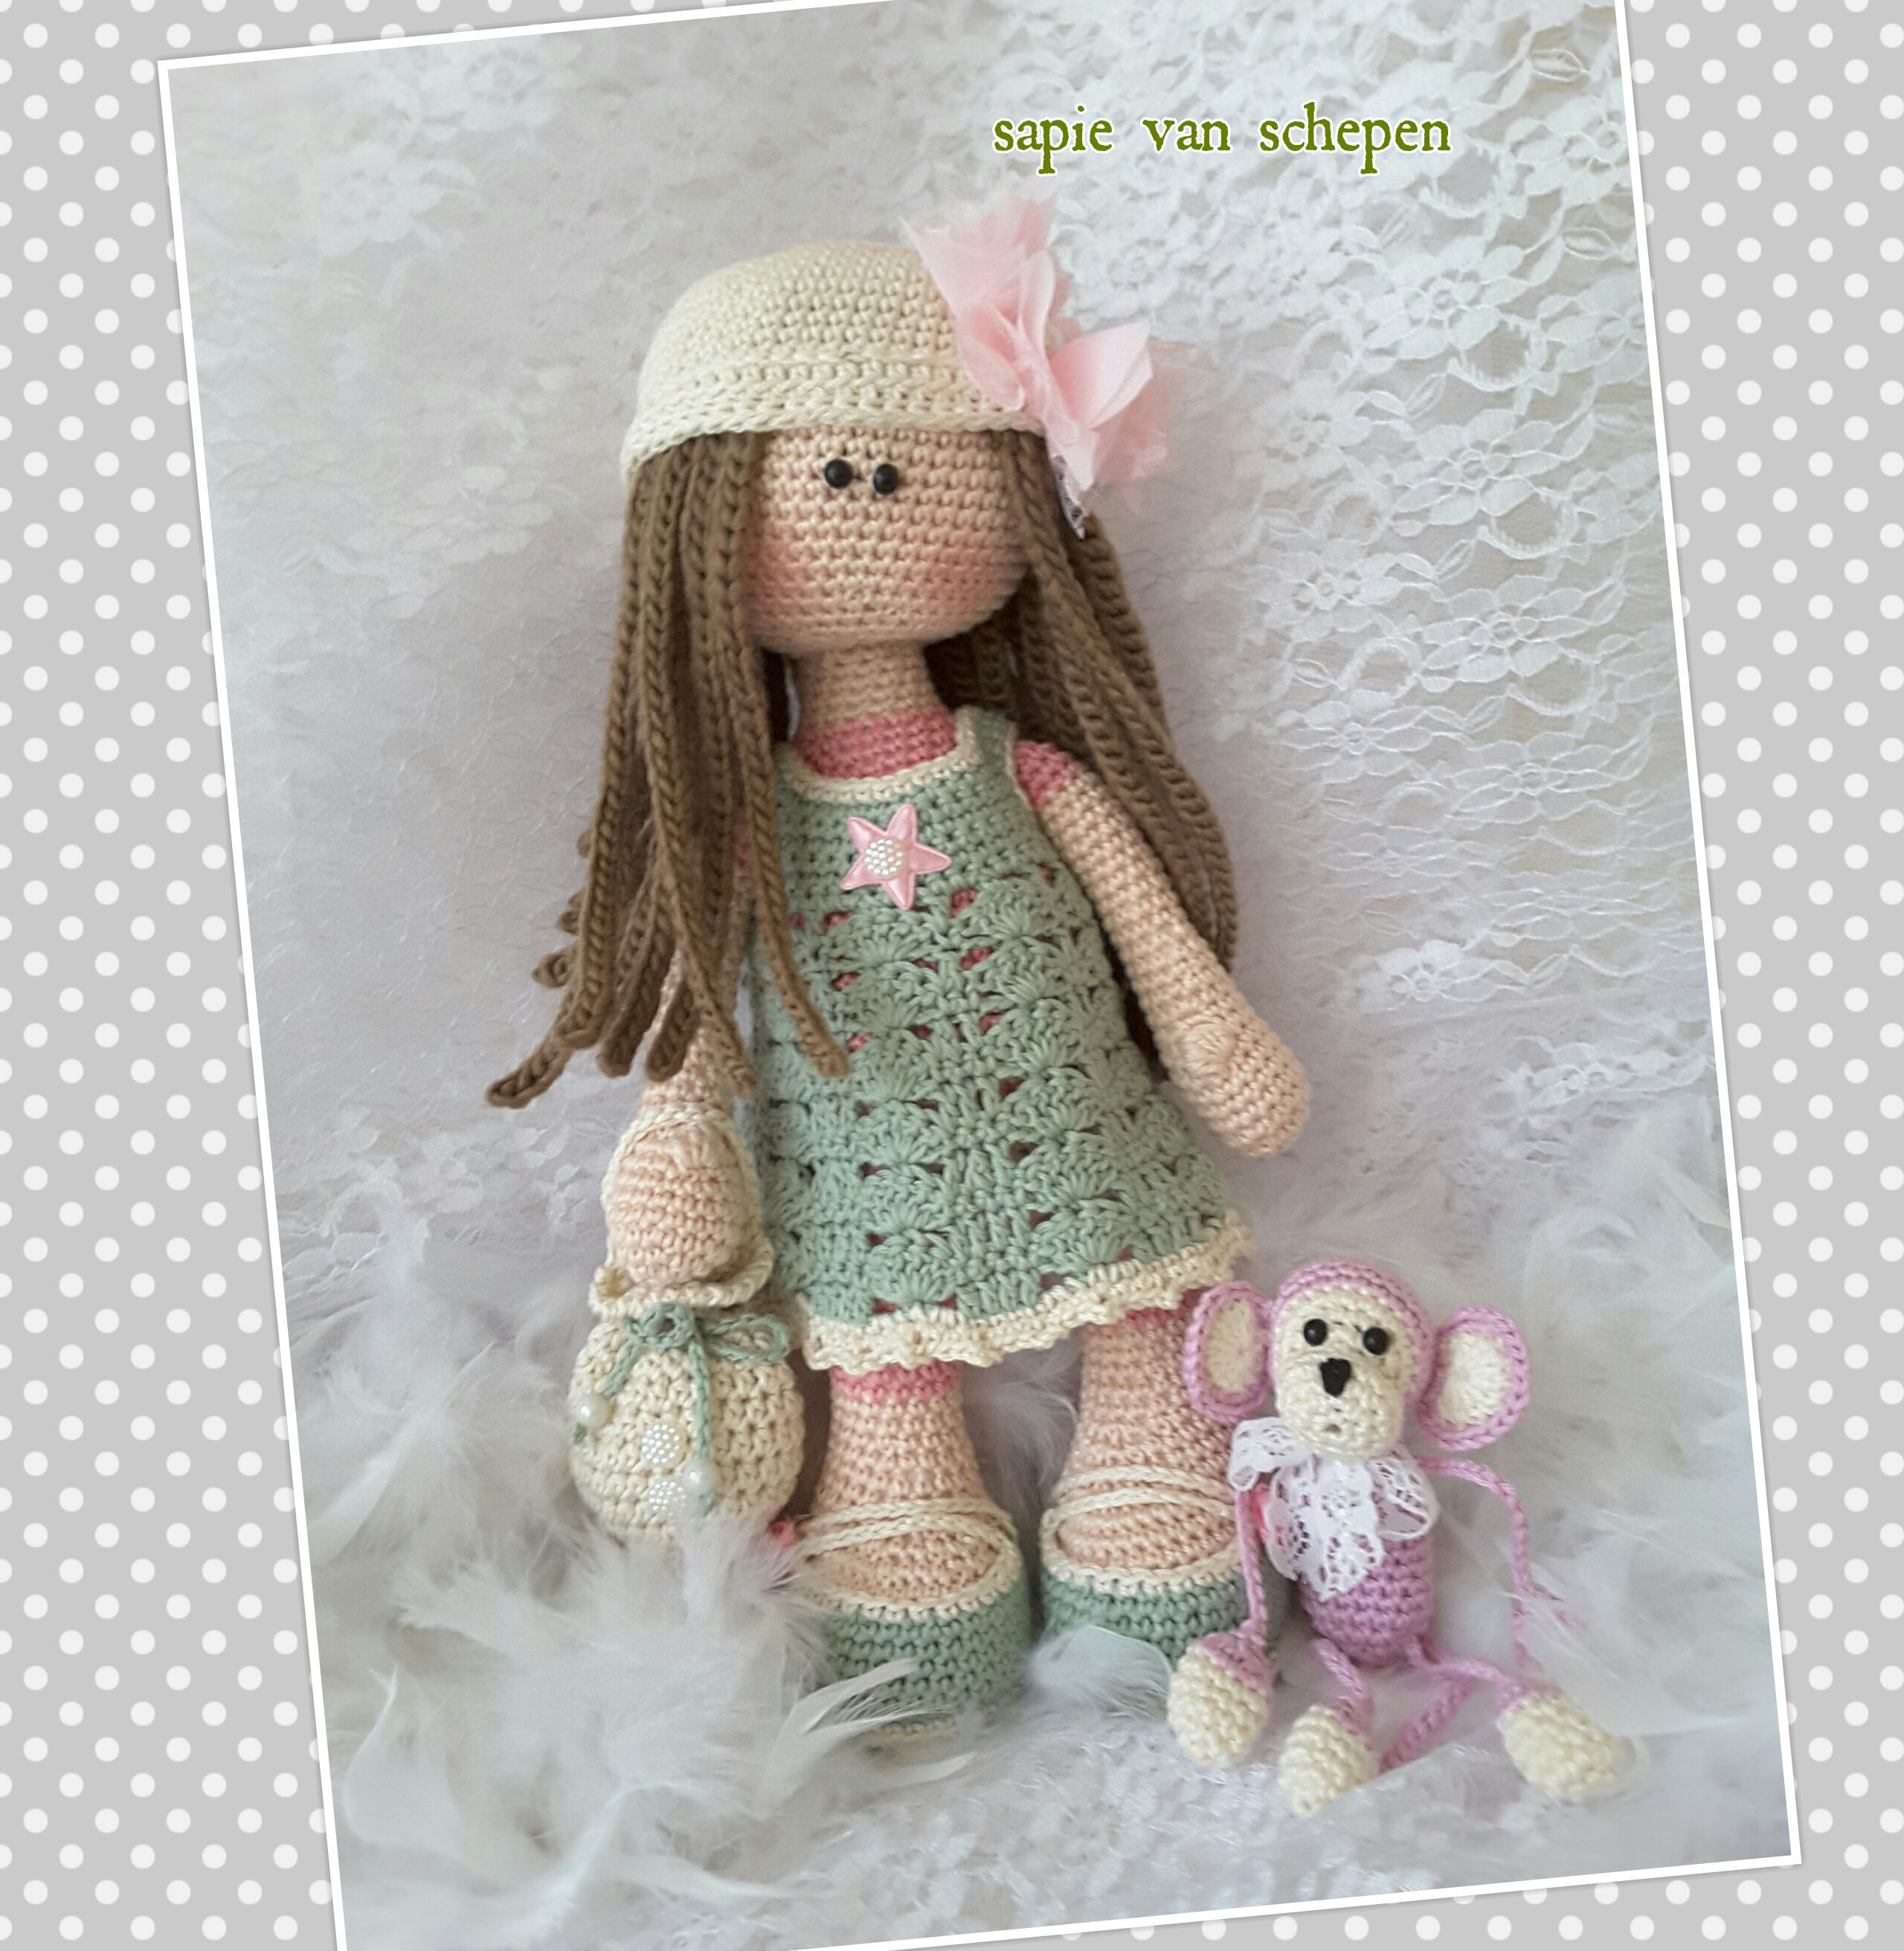 Cute Lilly Goes To Bed - Lilly Doll Crochet Pattern By ... | 2623x2560